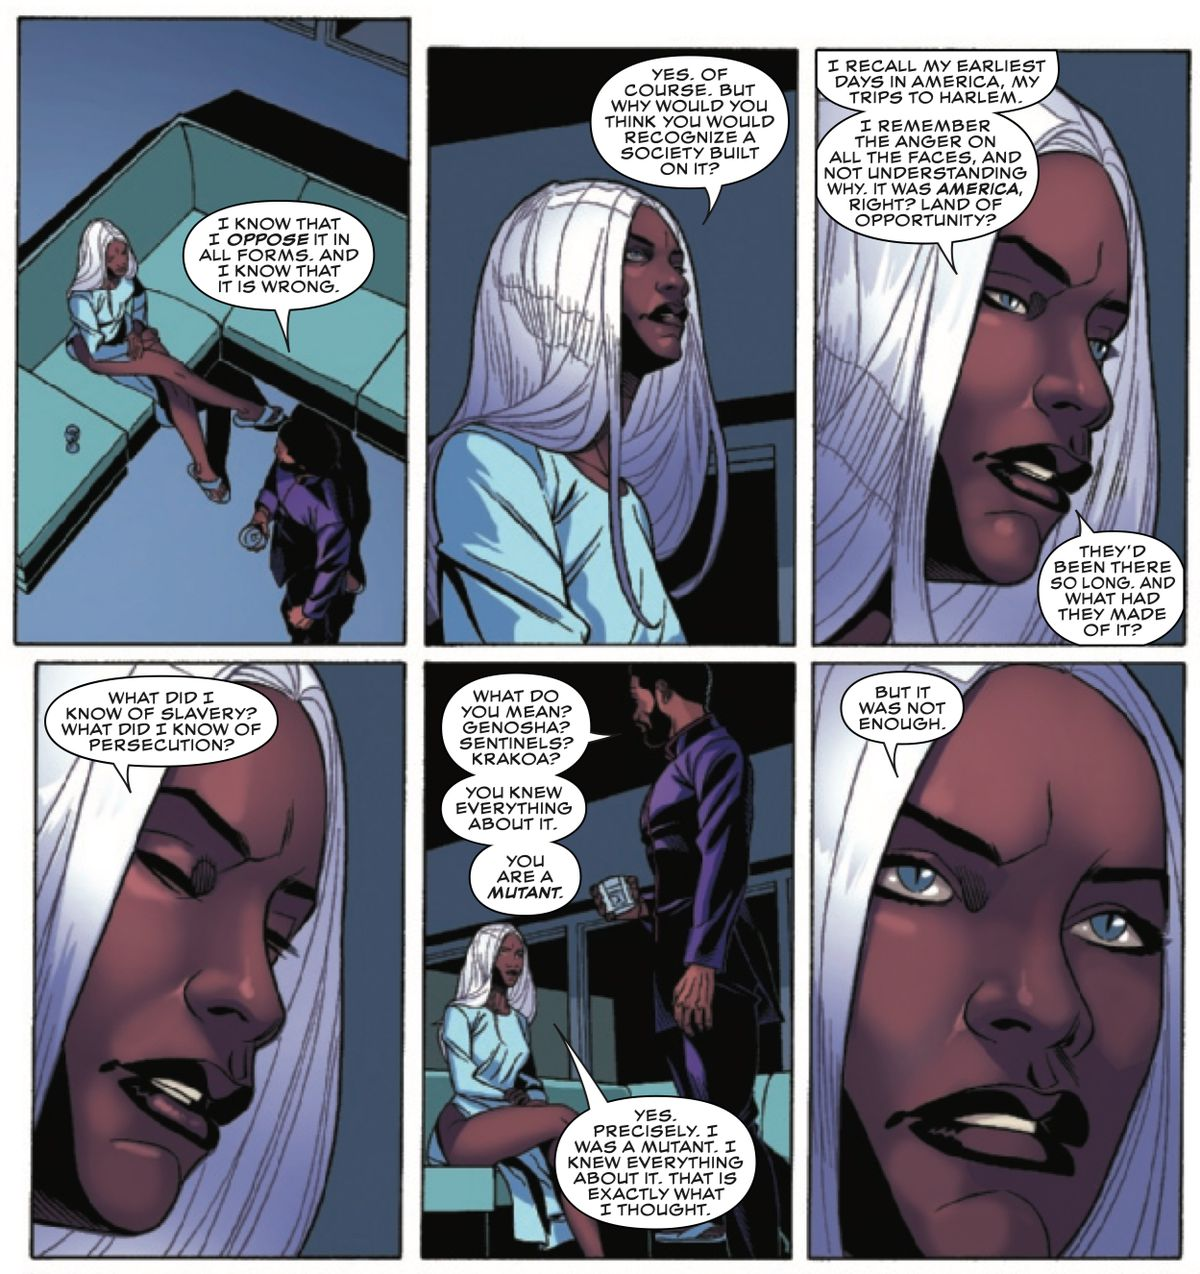 Storm and Black Panther discuss their own naivete in recognizing that a society was built on slavery — even despite their skin color and mutant status, in Black Panther #18, Marvel Comics (2019).